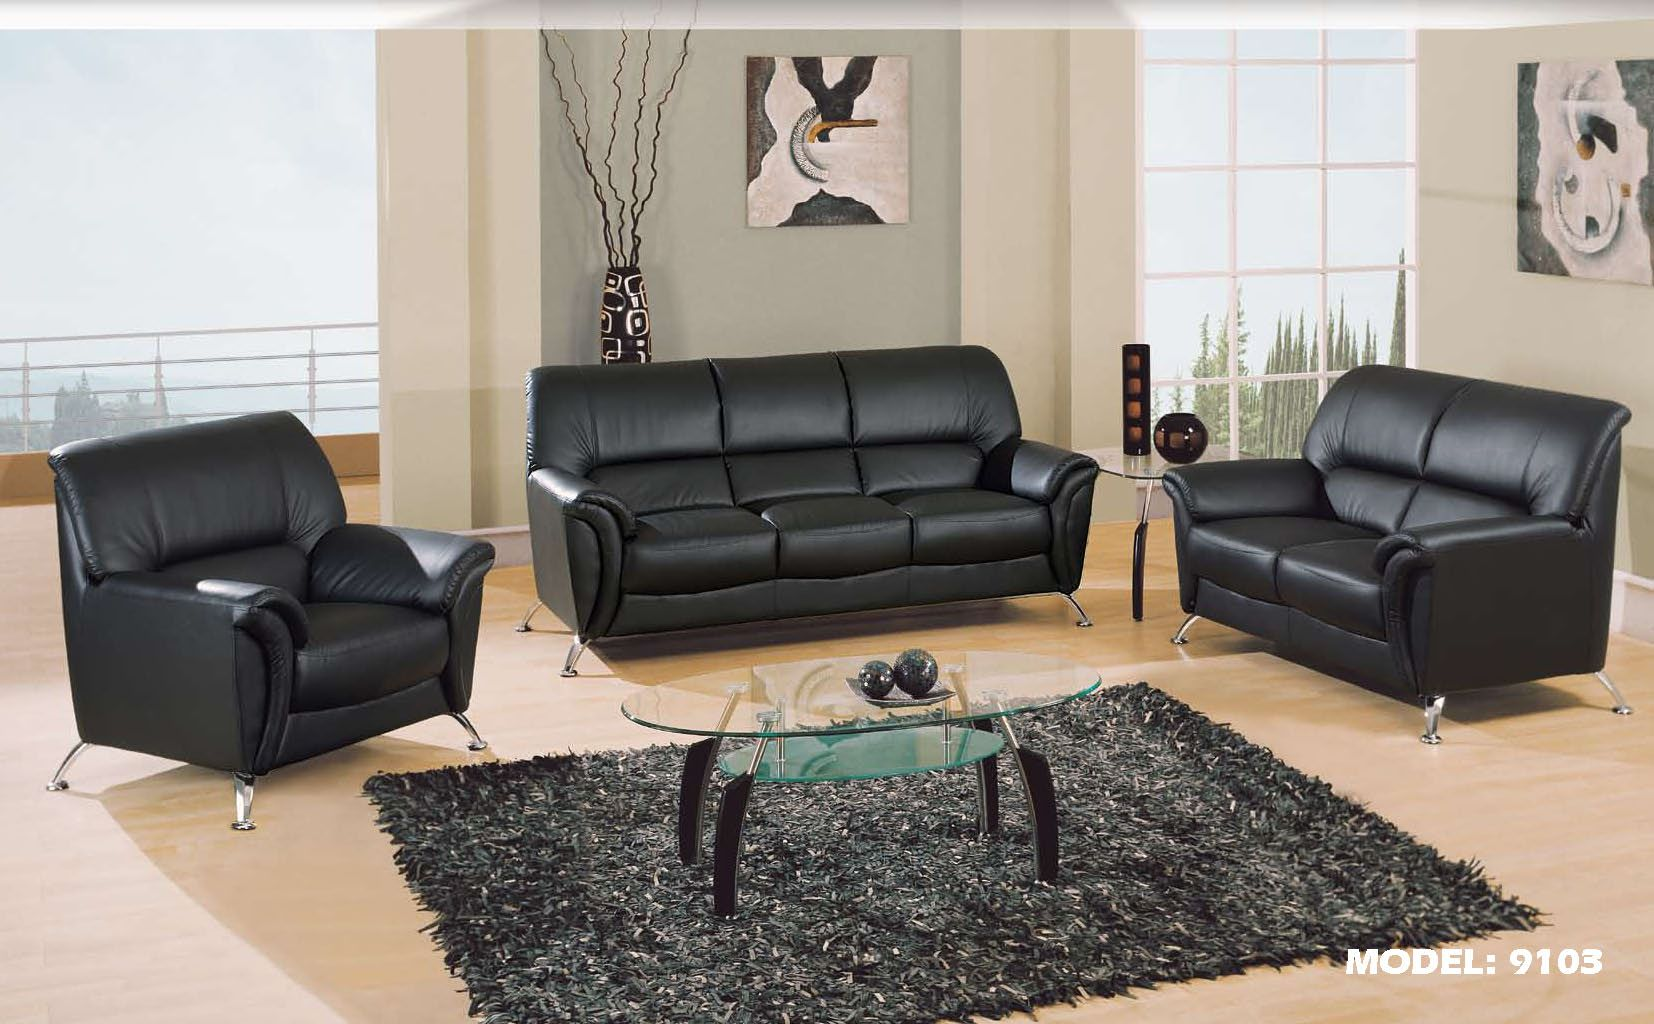 Images Of Sofa Set Designs Google Search Sofa Pinterest Sofa Set Desi